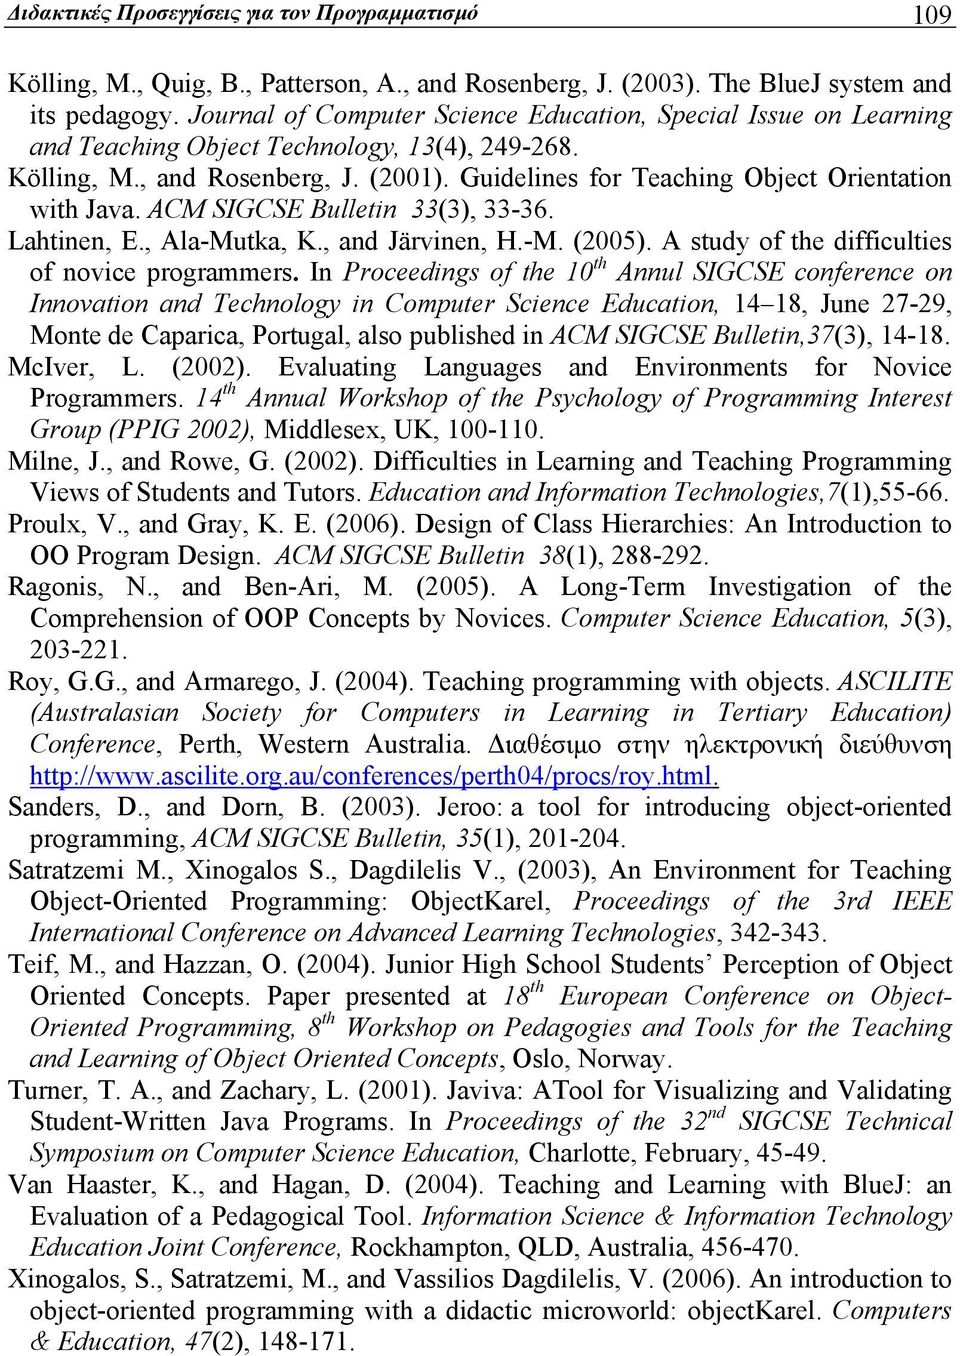 Guidelines for Teaching Object Orientation with Java. ACM SIGCSE Bulletin 33(3), 33-36. Lahtinen, E., Ala-Mutka, K., and Järvinen, H.-M. (2005). A study of the difficulties of novice programmers.